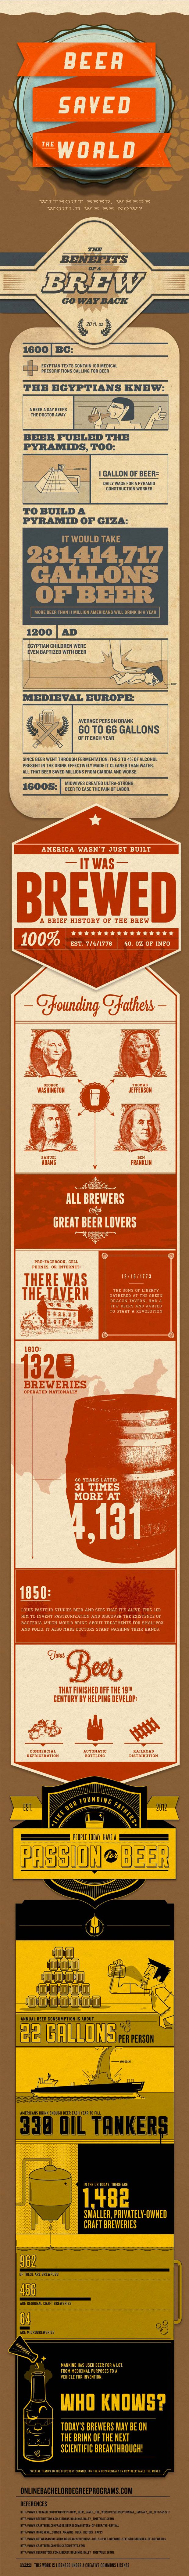 The Miraculous, Magical, Magnificent History Of Beer [Infographic] | Co.Design: business + innovation + design